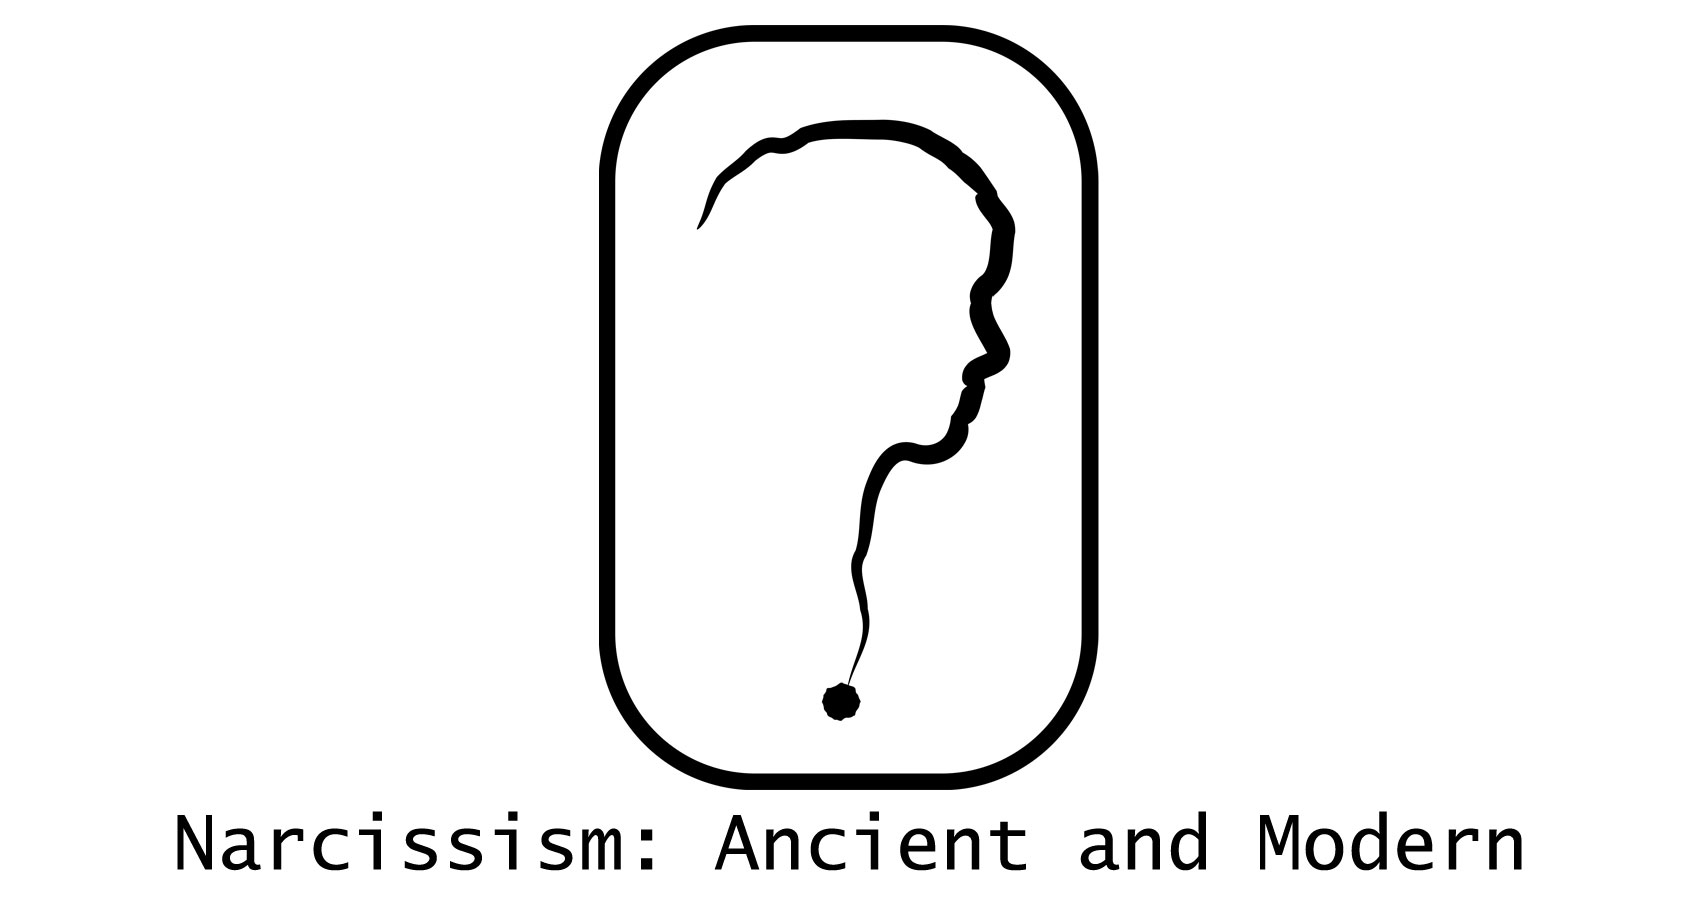 Narcissism: Ancient and Modern - written by Stanley Wilkin at Spillwords.com